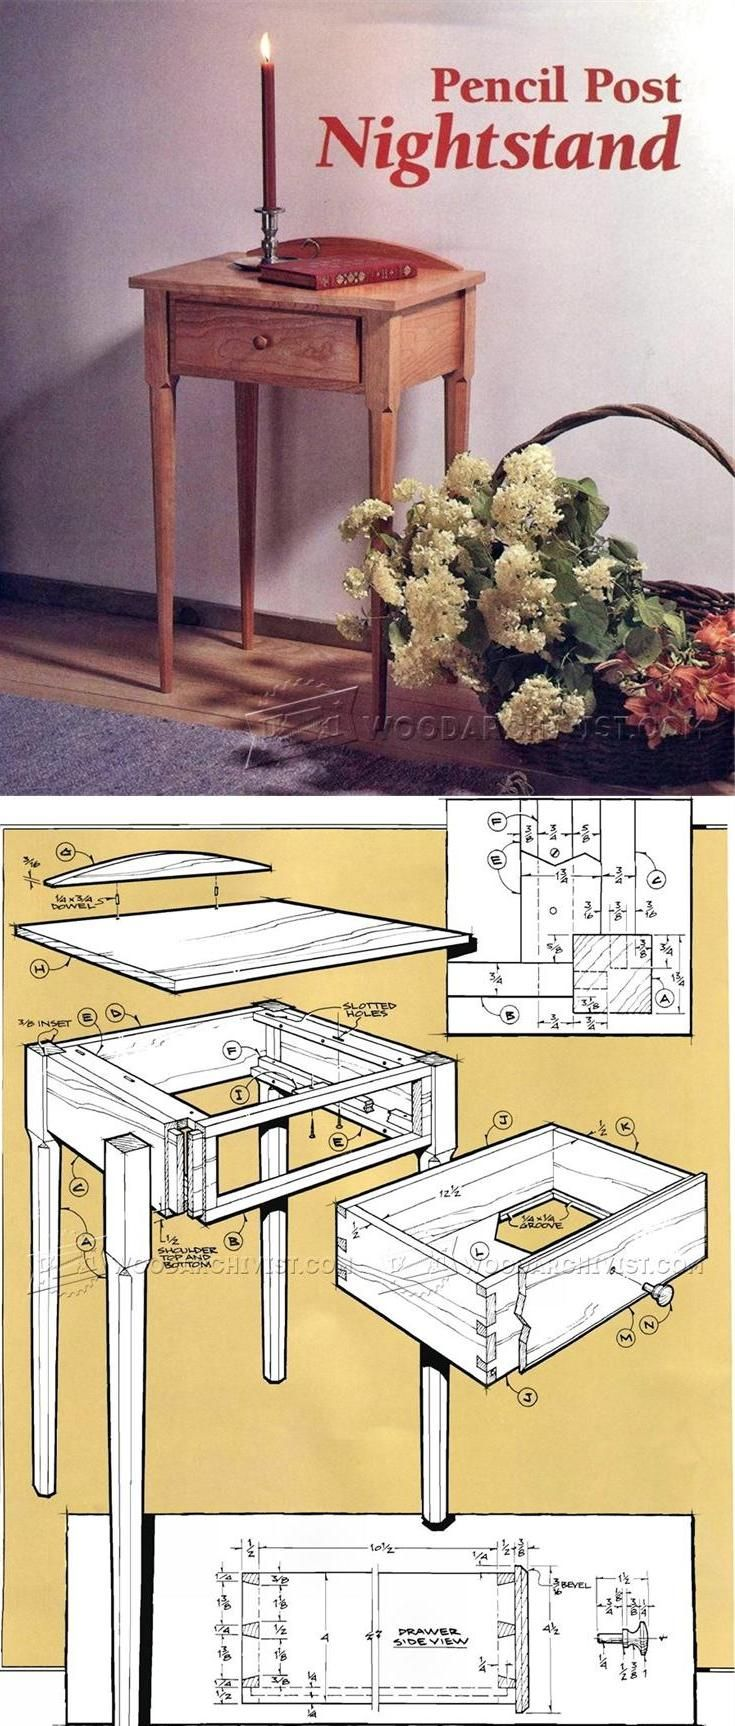 Pencil Post Nightstand Plans - Furniture Plans and Projects    WoodArchivist.com